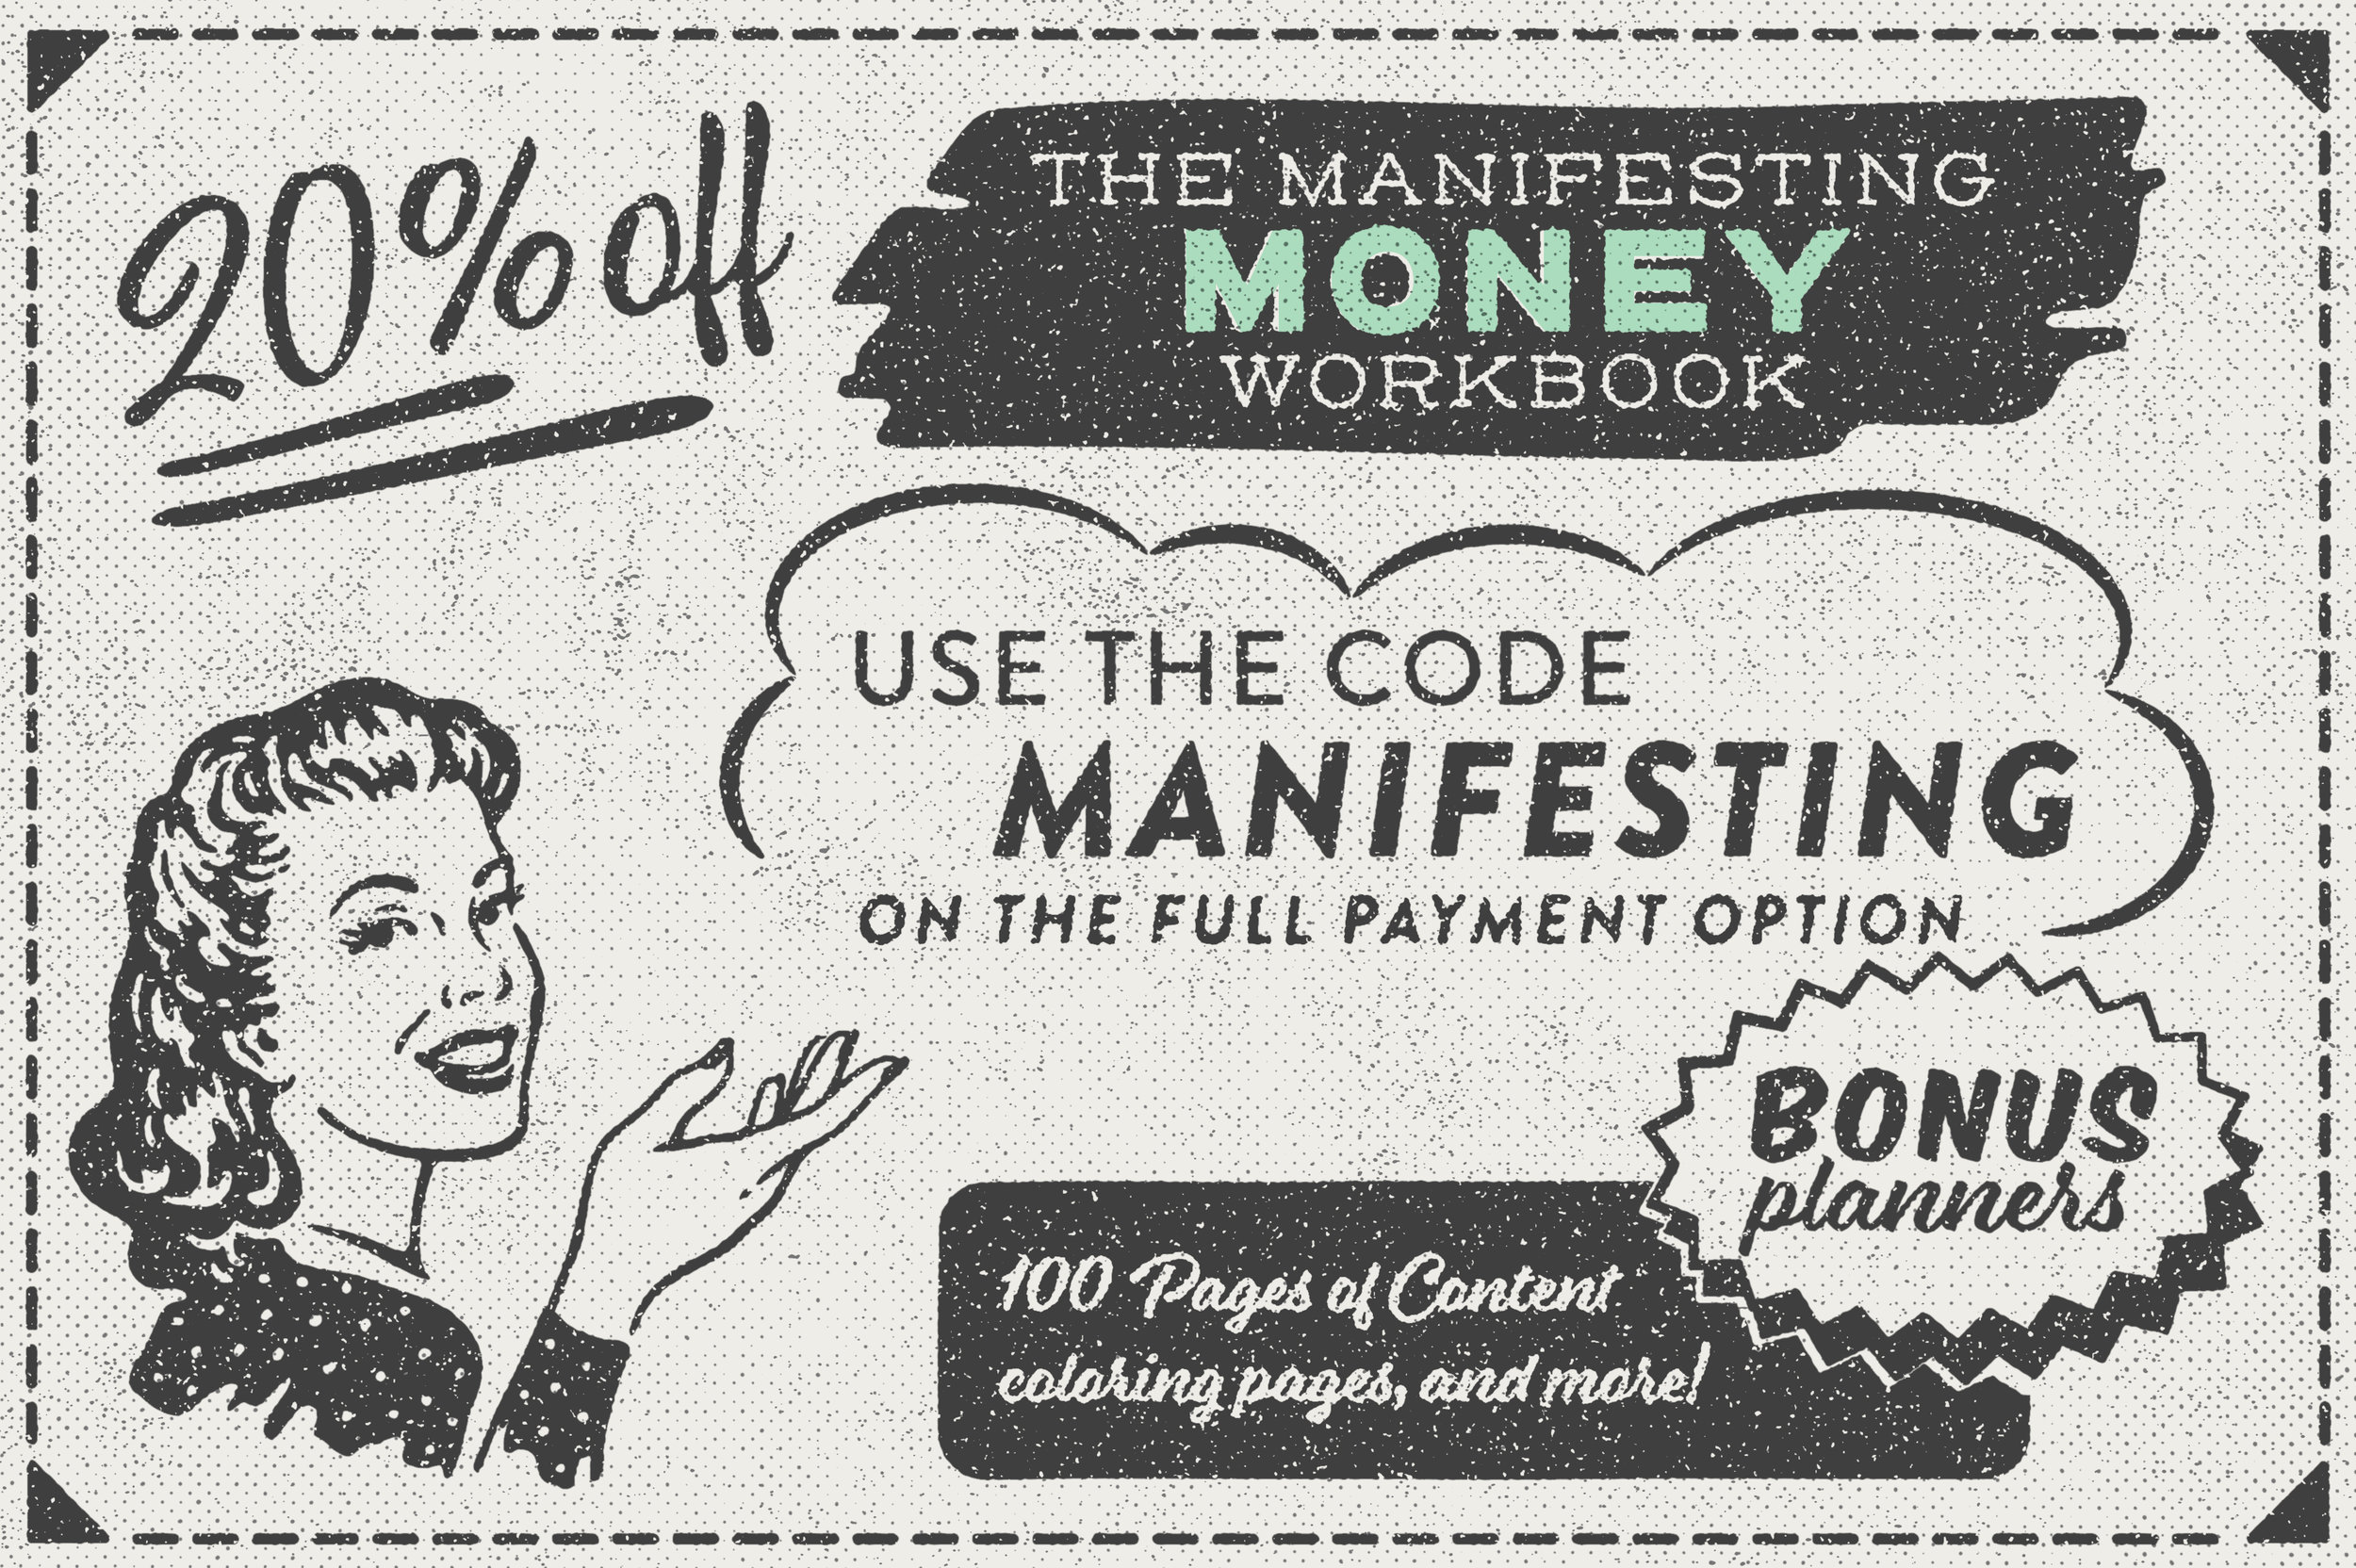 "Clip this coupon to get 20% off your Manifesting Money Workbook,  or just use the code ""manifesting"" at checkout ."